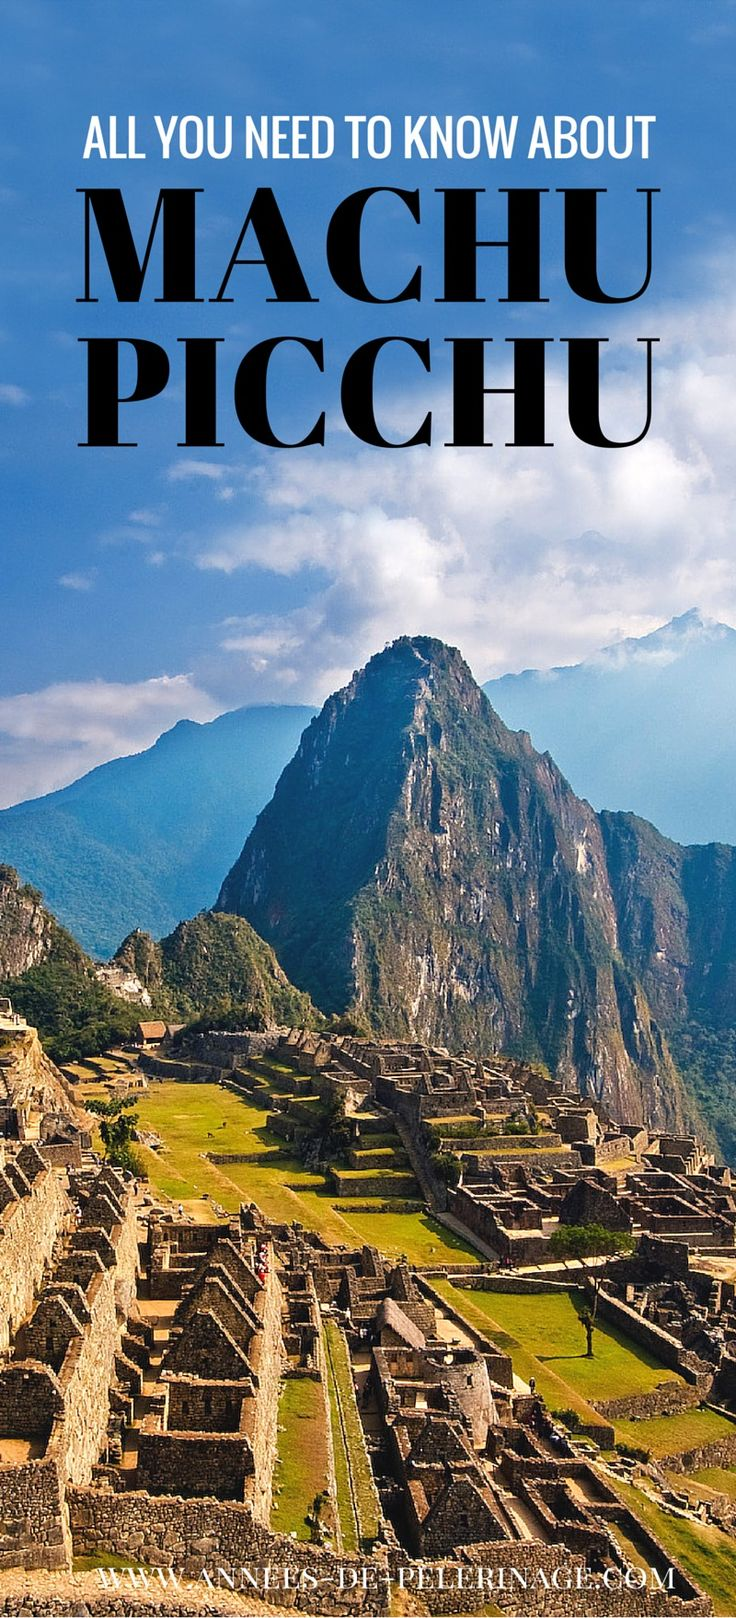 Machu Picchu: All you ever need to know about the ancient Inca Ruins in Peru. All the facts on Machu Picchu, pictures and detailed information. Click for more.